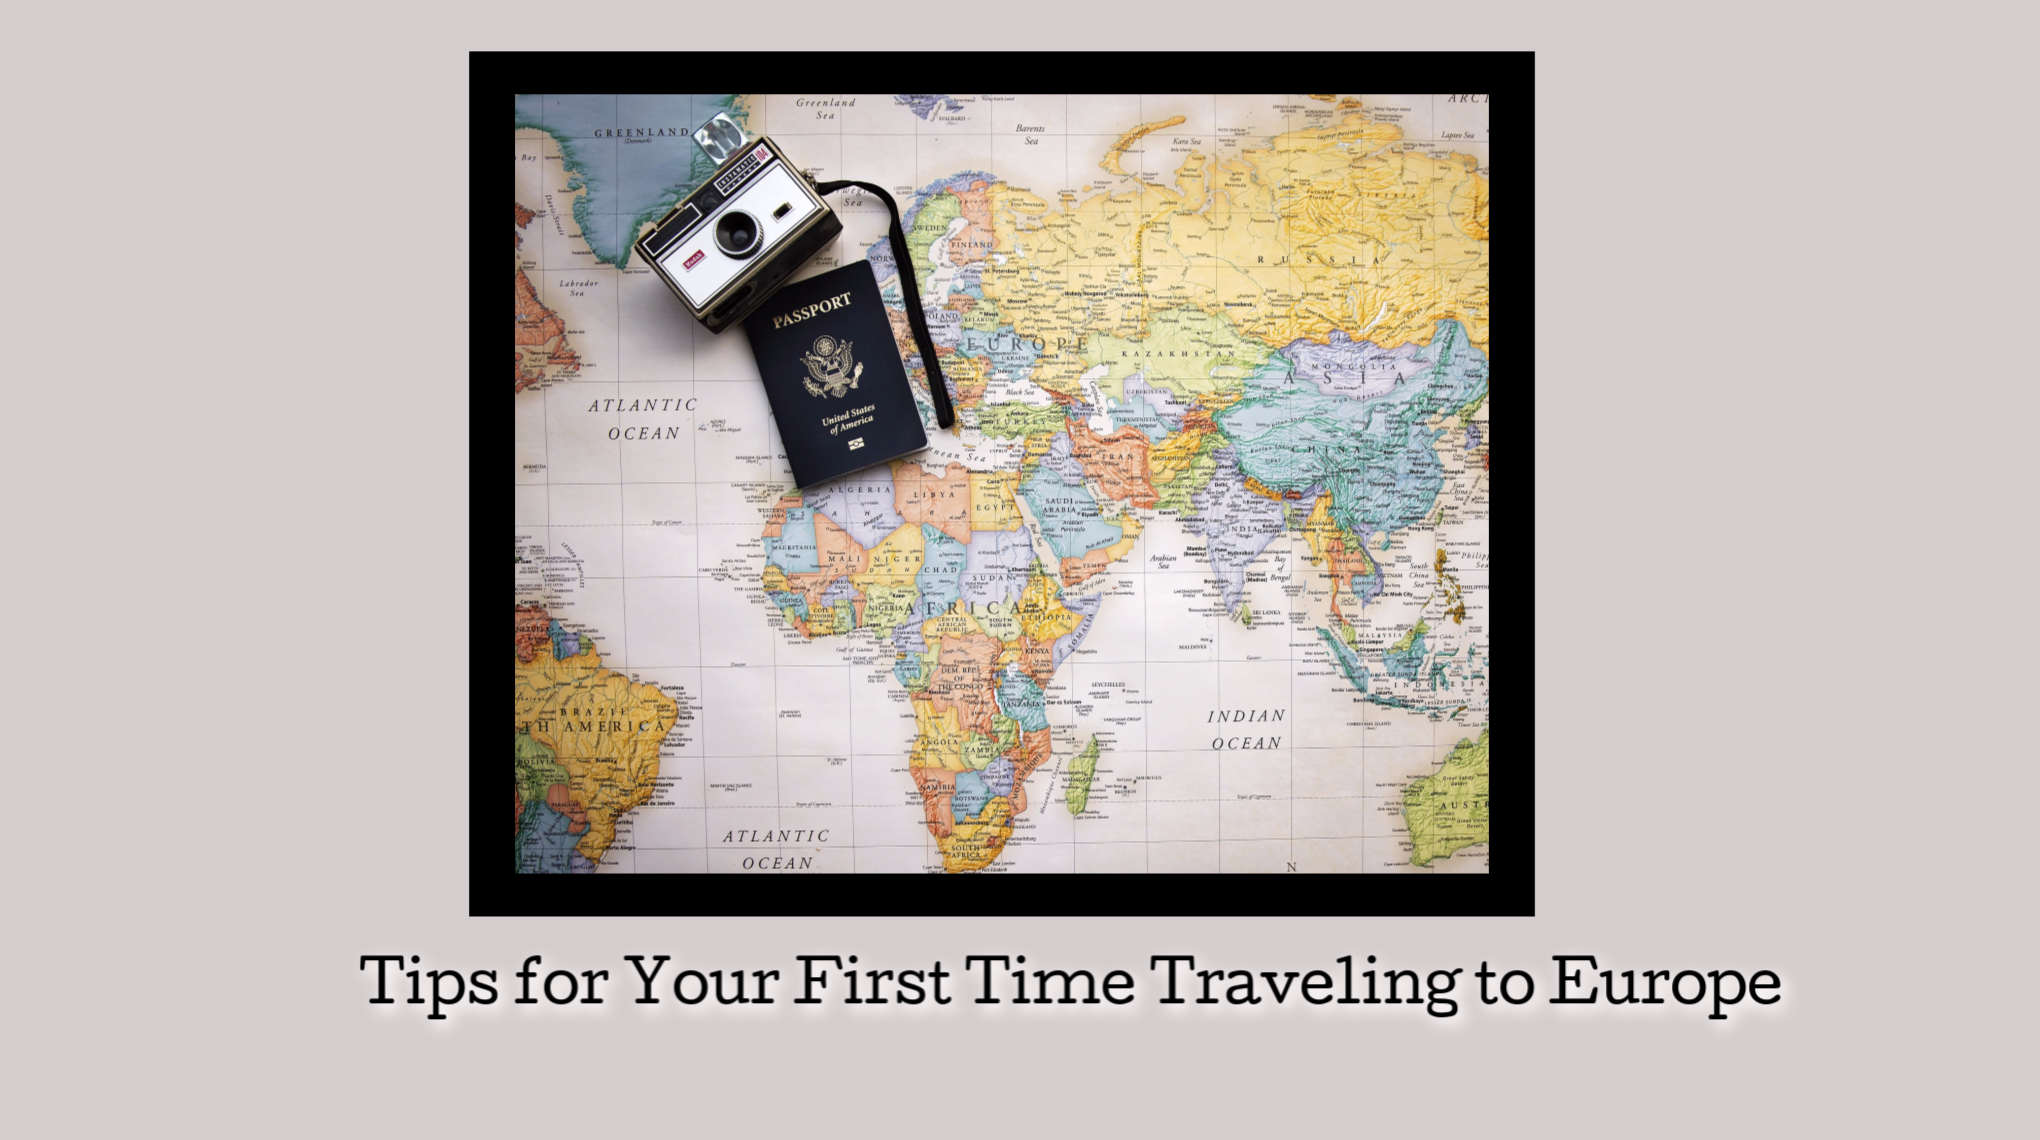 Tips for Your First Time Traveling to Europe